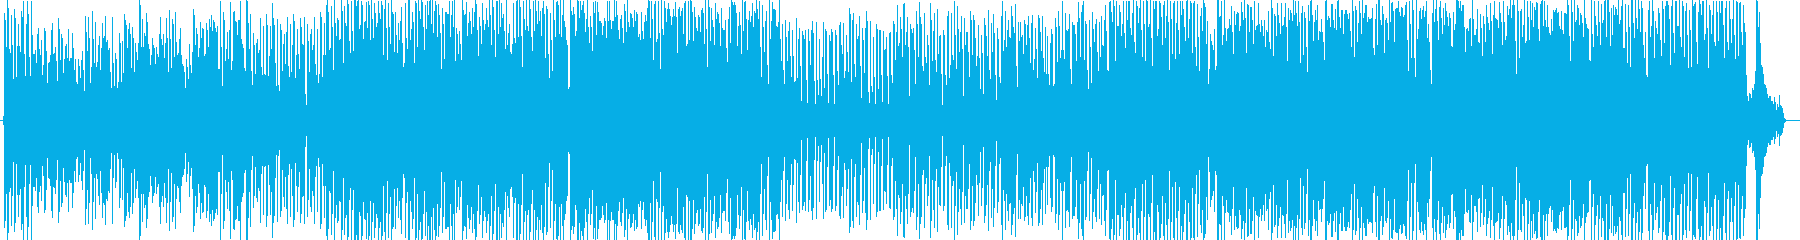 A song that imagines a cute kid or animal's reproduced waveform